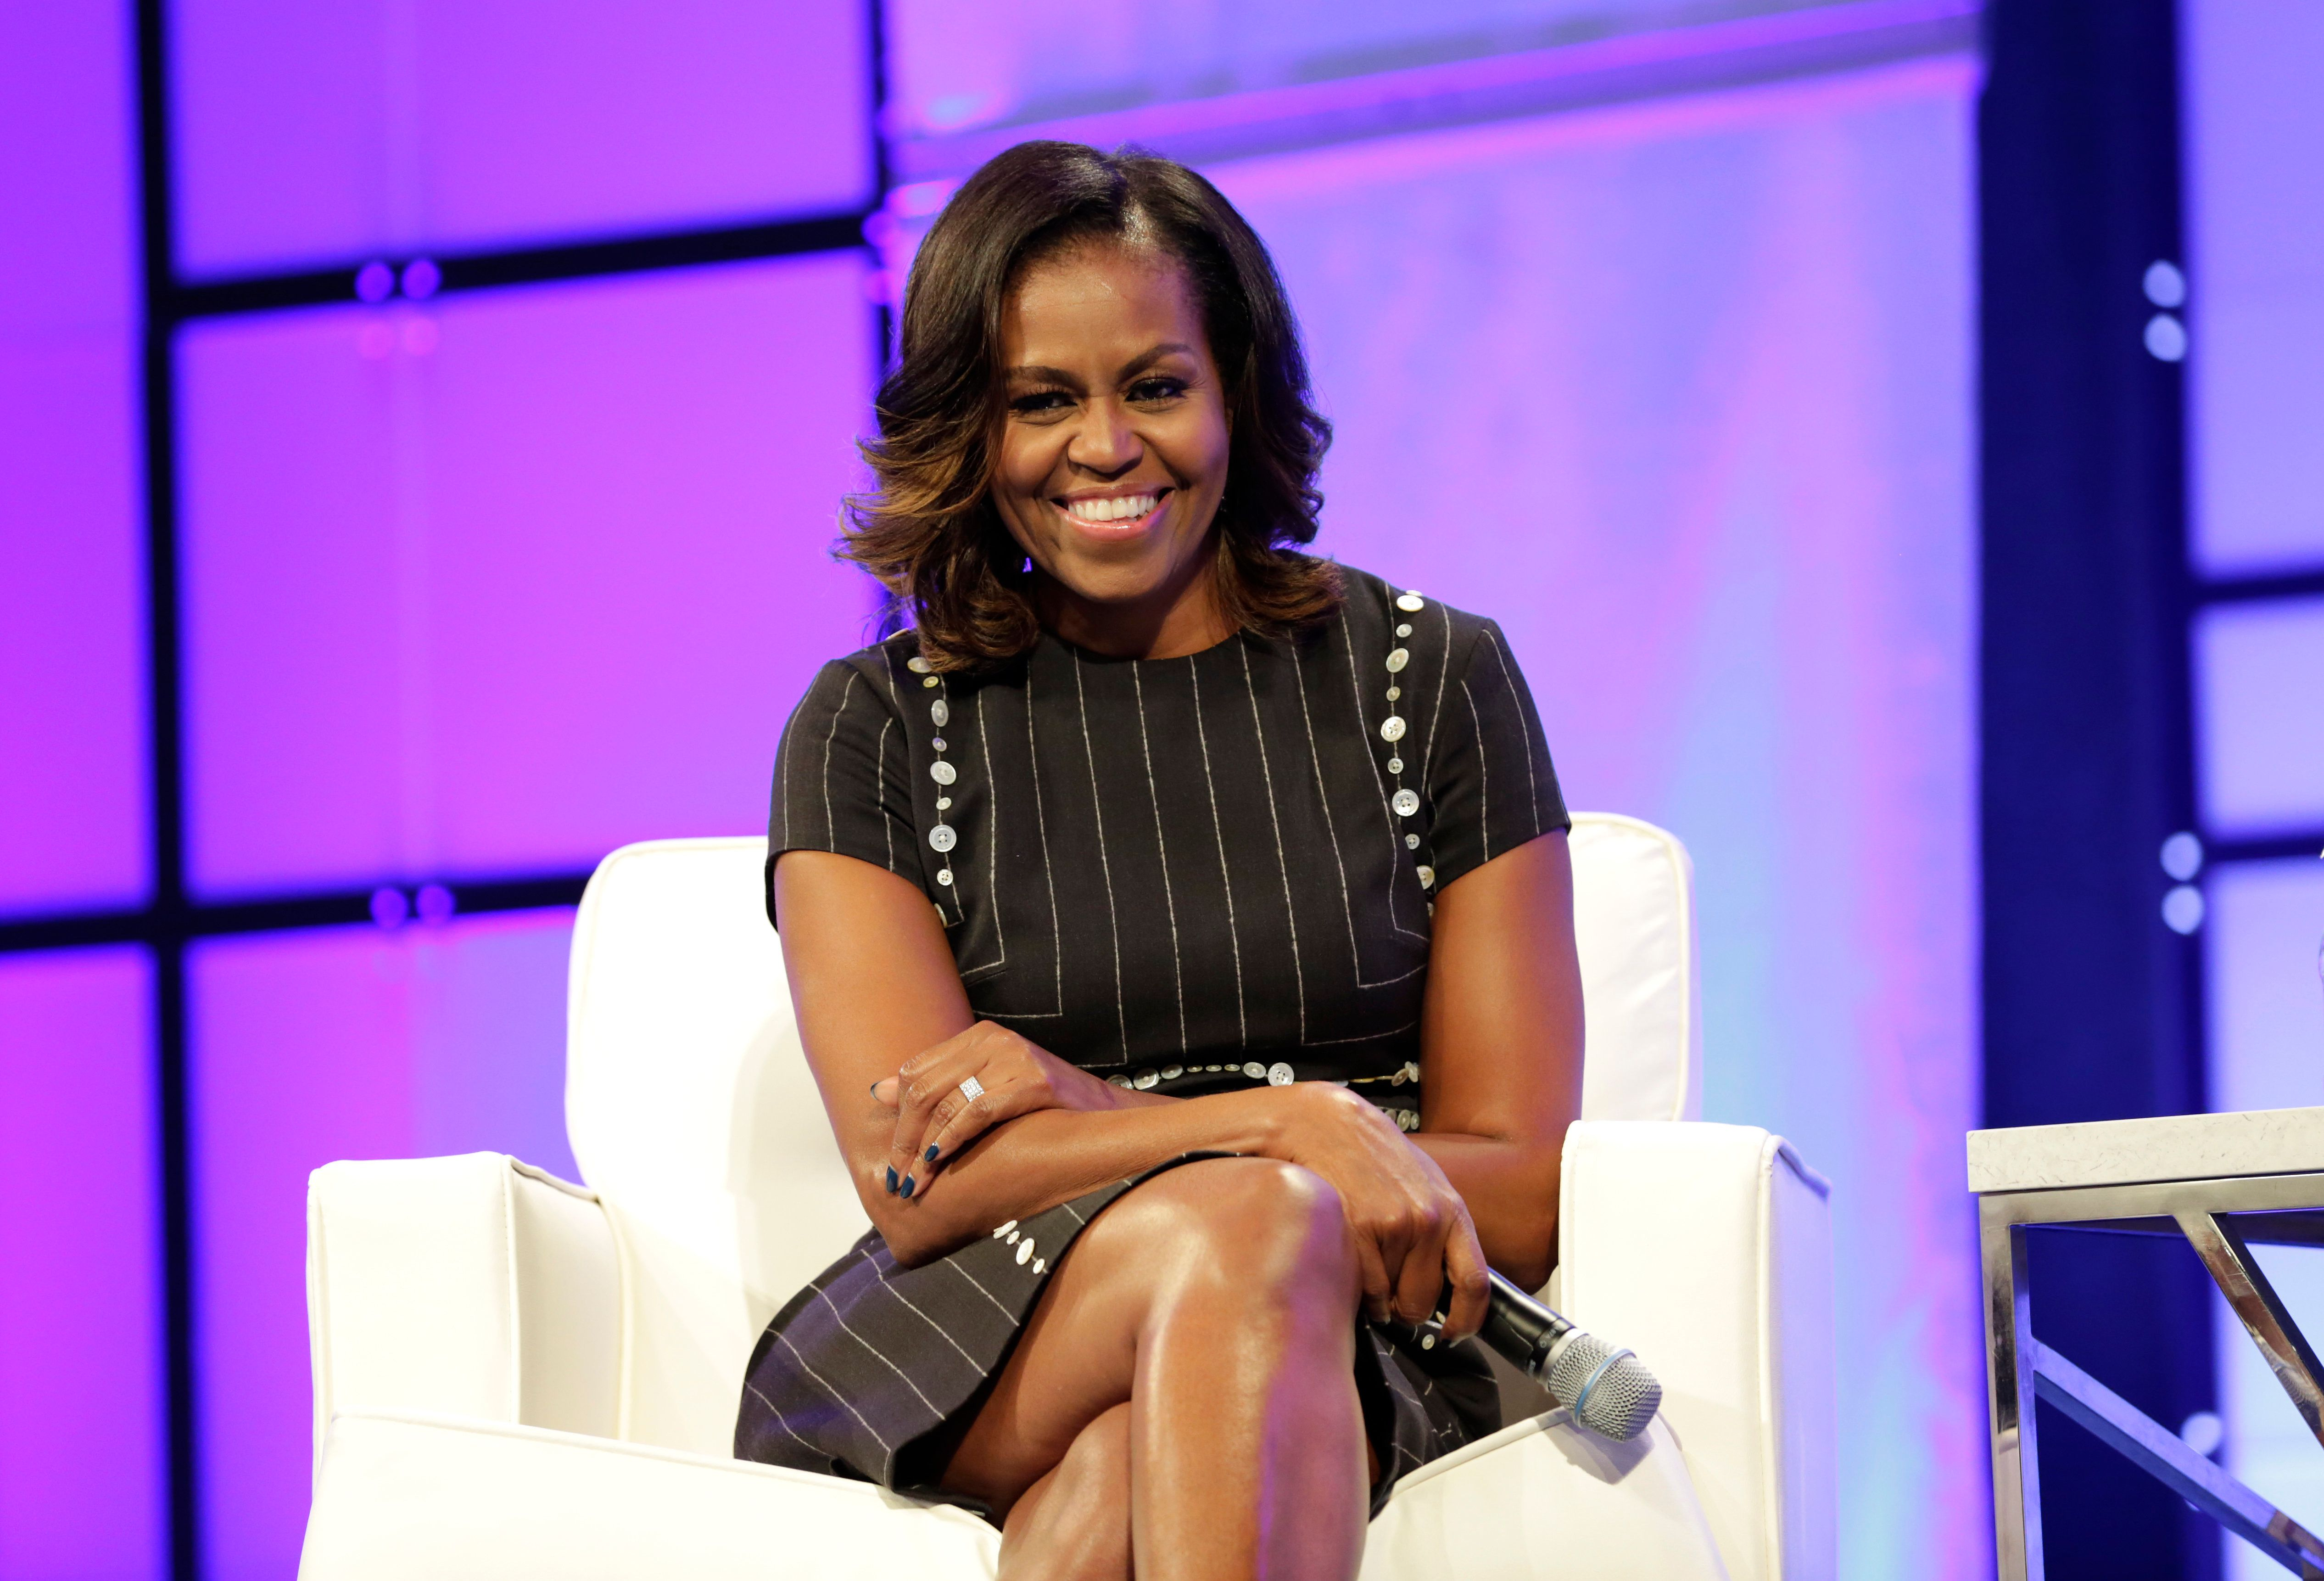 PHILADELPHIA, PA - OCTOBER 03:  Former First Lady of the United States Michelle Obama watches the surprise video message from her husband Former President of the United States Barack Obama during Pennsylvania Conference For Women 2017 at Pennsylvania Convention Center on October 3, 2017 in Philadelphia, Pennsylvania.  (Photo by Marla Aufmuth/Getty Images for Pennsylvania Conference for Women)